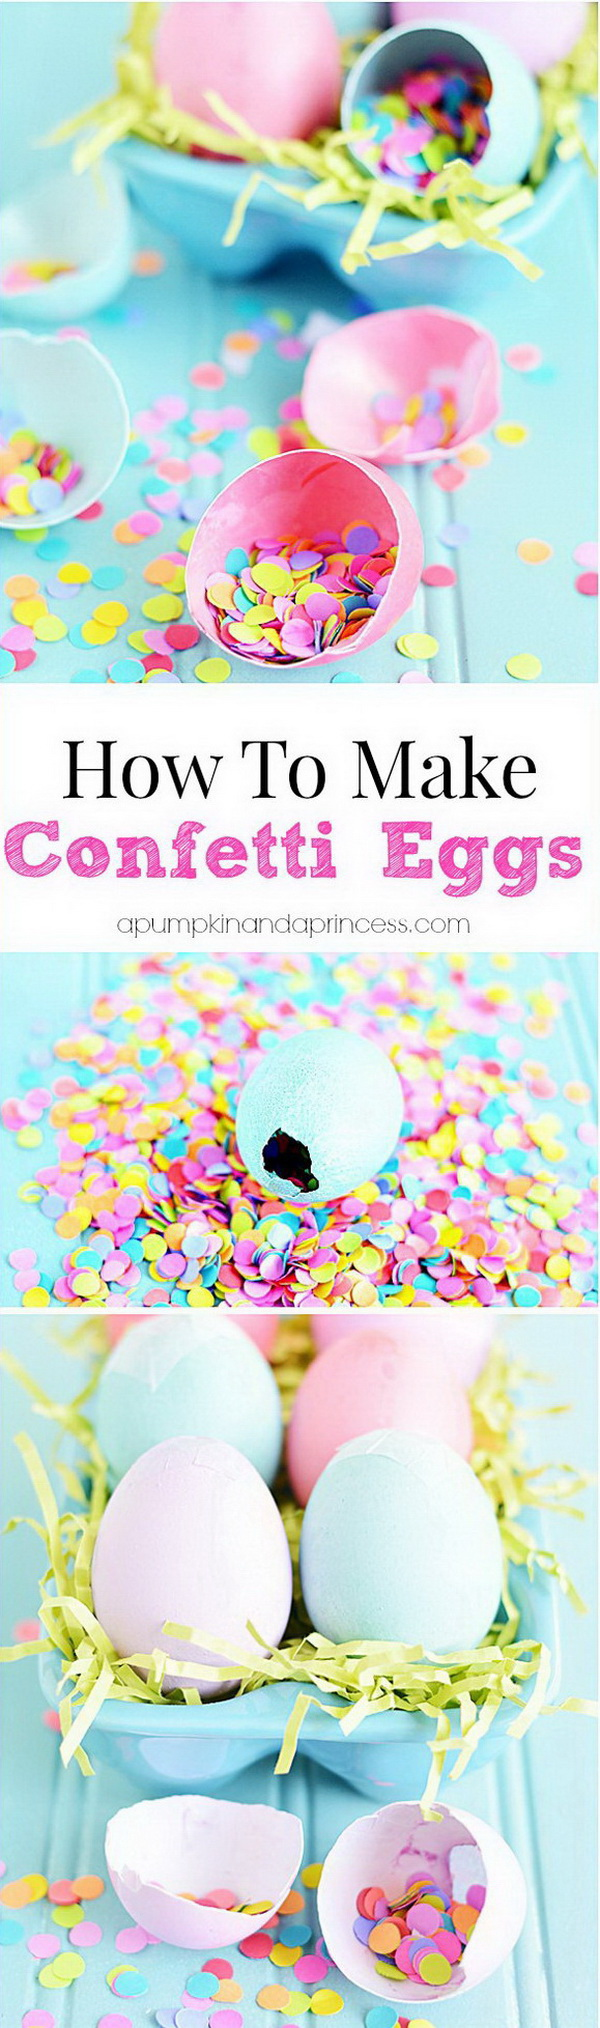 DIY Easter Decoration Ideas: DIY Confetti Filled Easter Eggs.